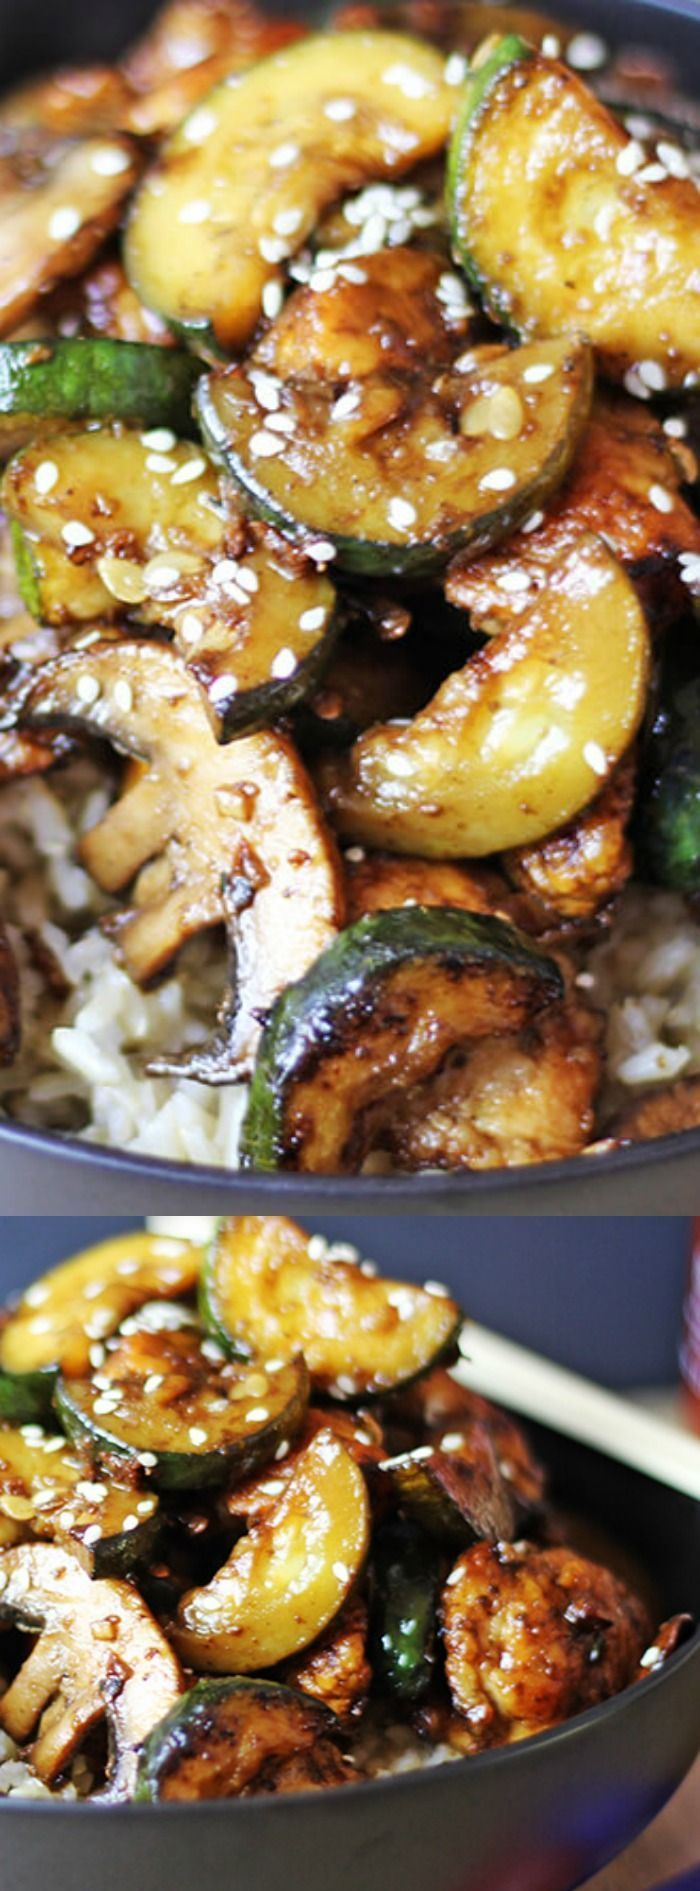 Do you absolutely love Panda Express? Especially their mushroom chicken?! So do we!!! That's why we're flipping out over this Copycat Panda Express Zucchini Mushroom Chicken from Dinner, then Dessert.